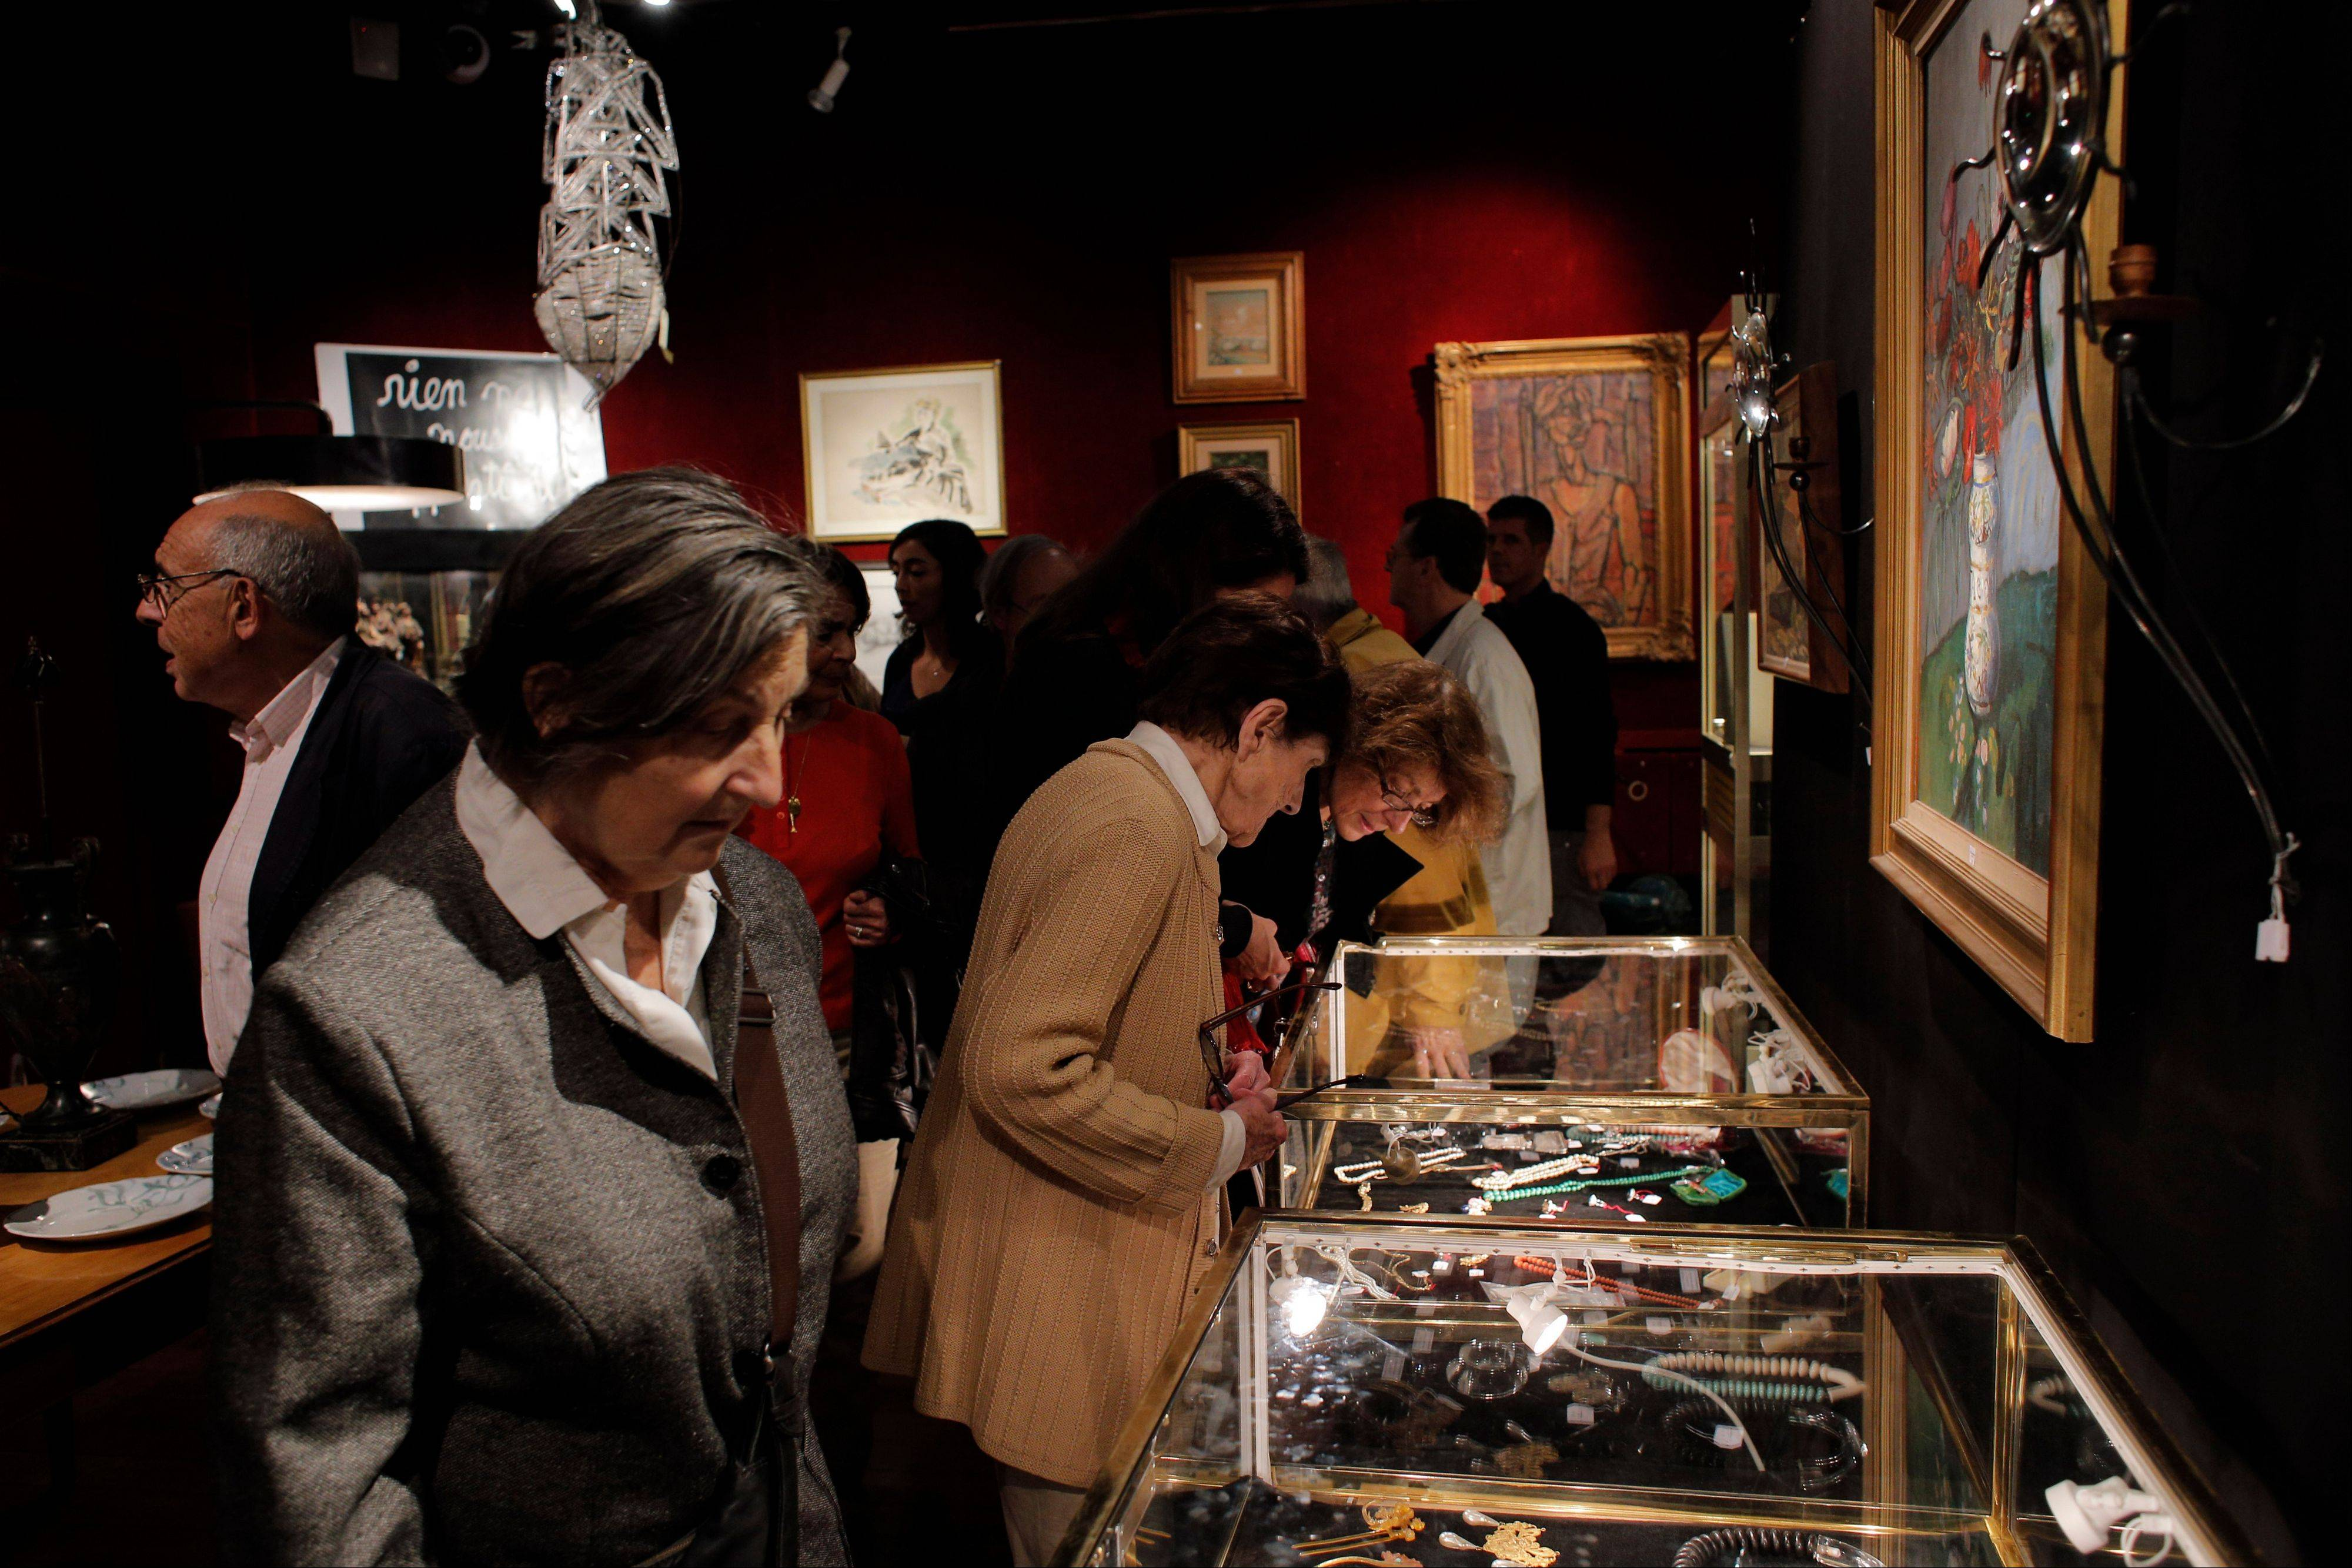 Visitors inspect jewels and paintings at the Drouot auction's house in Paris.